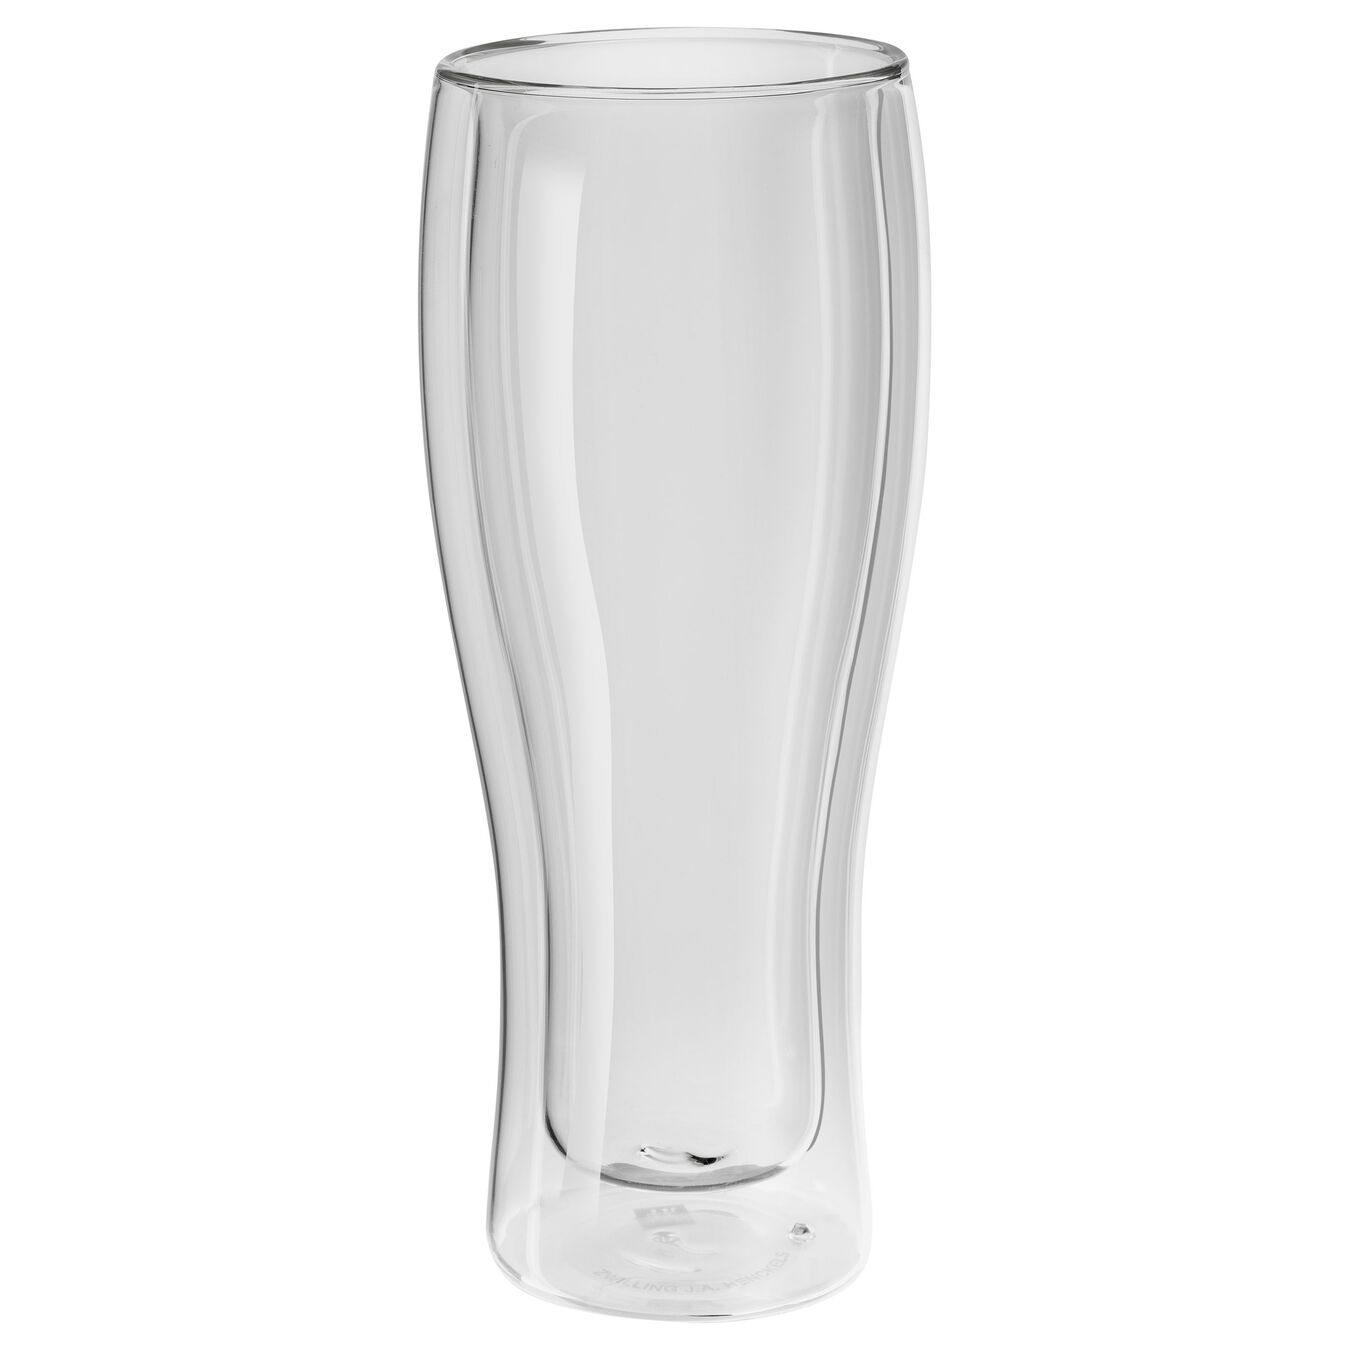 4-pc, Beer glass set,,large 5